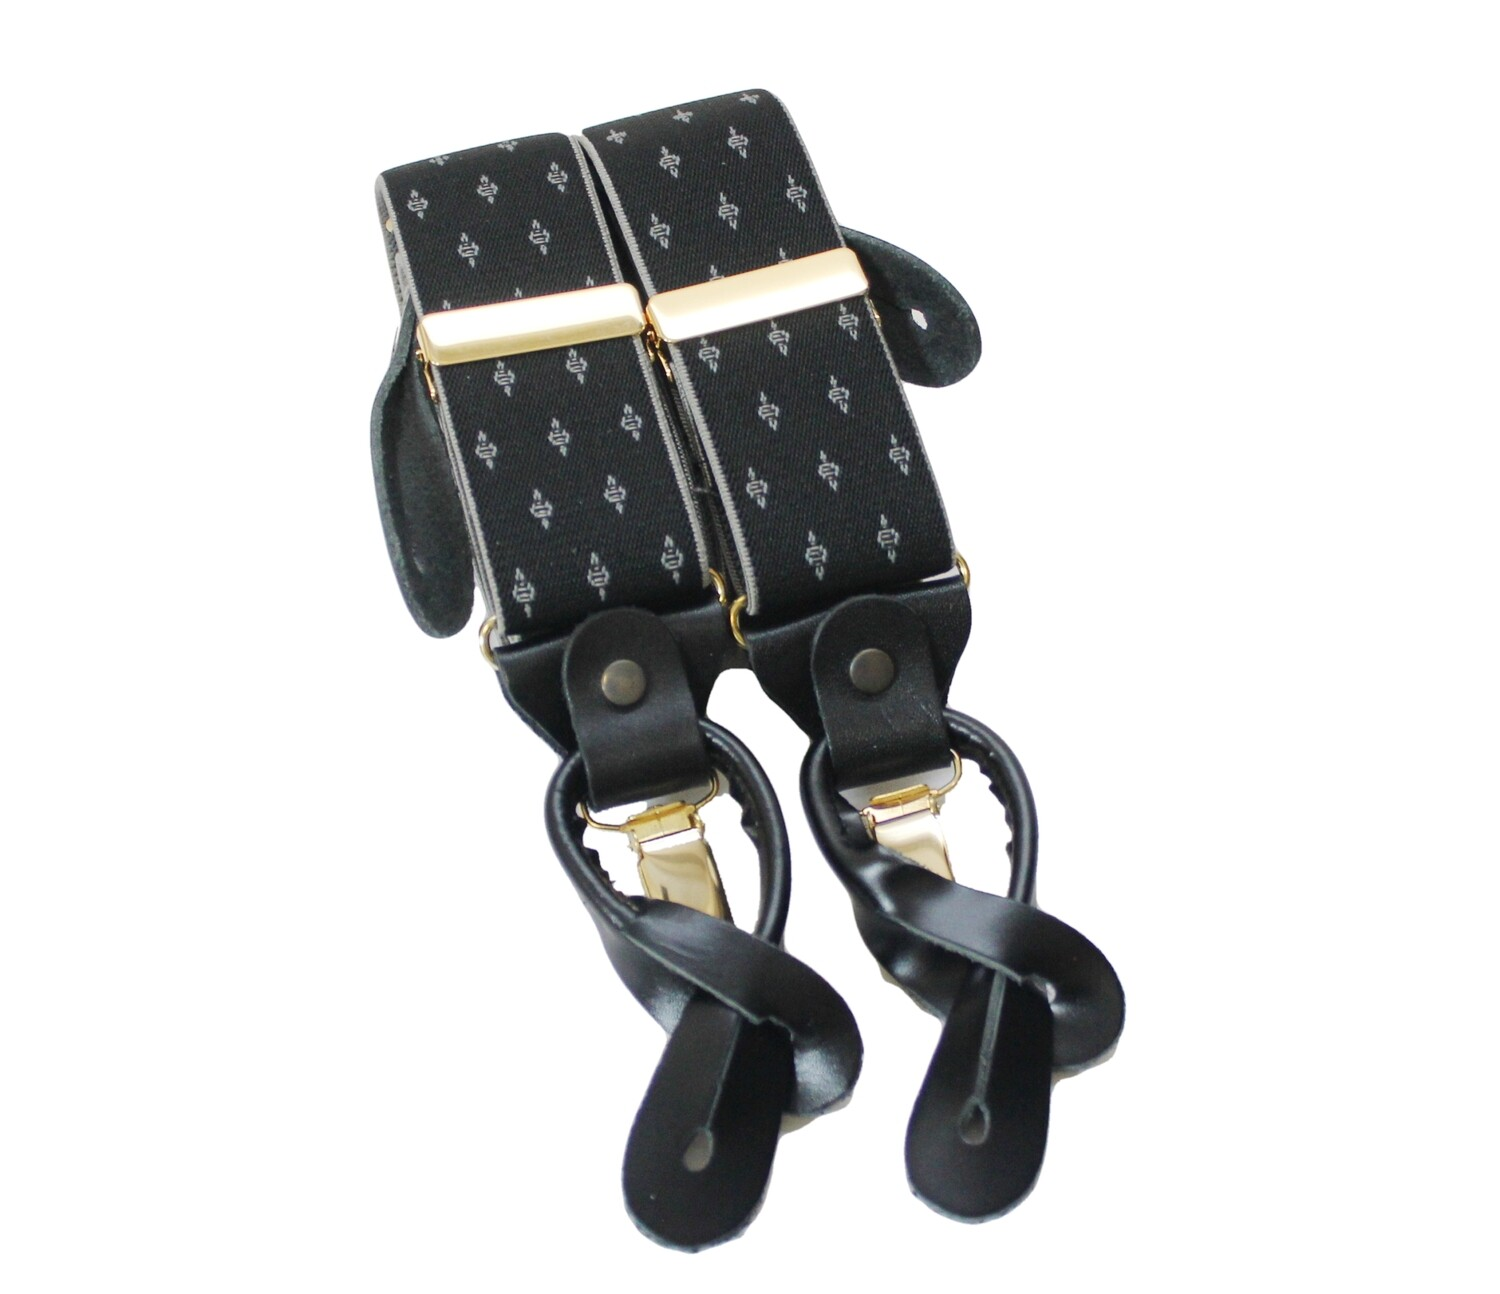 Olive Diamond Braces with Leather Tabs and Clips